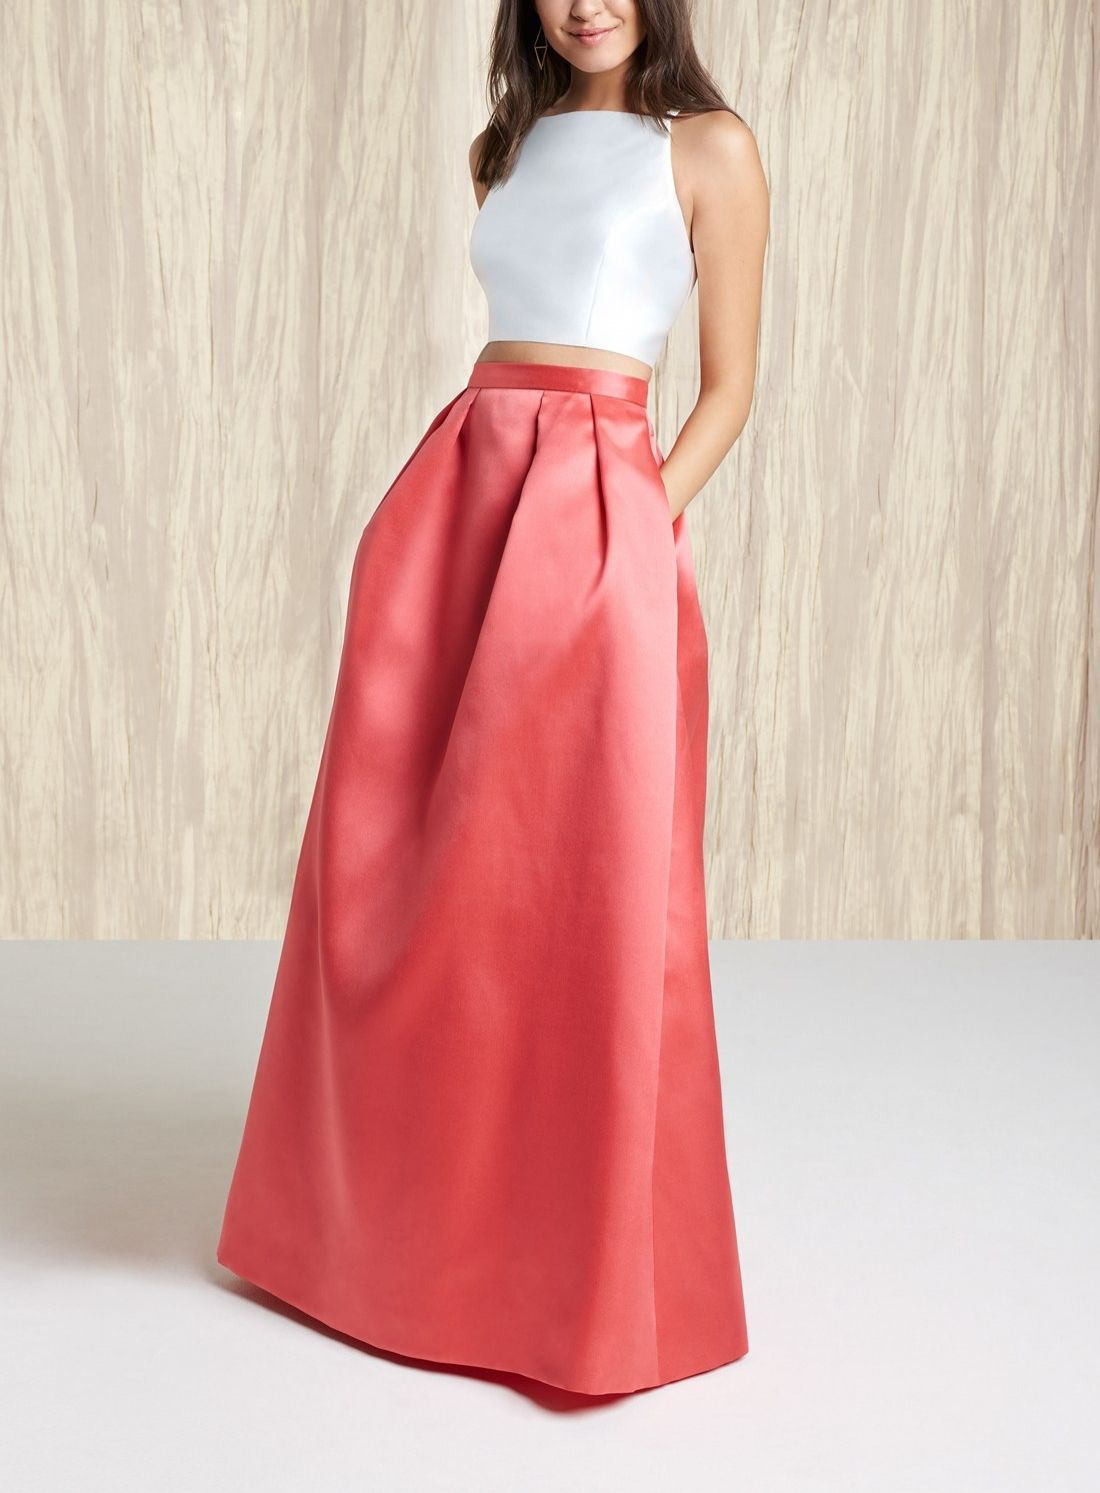 Crushing on this coral and white twopiece satin ballgown for prom